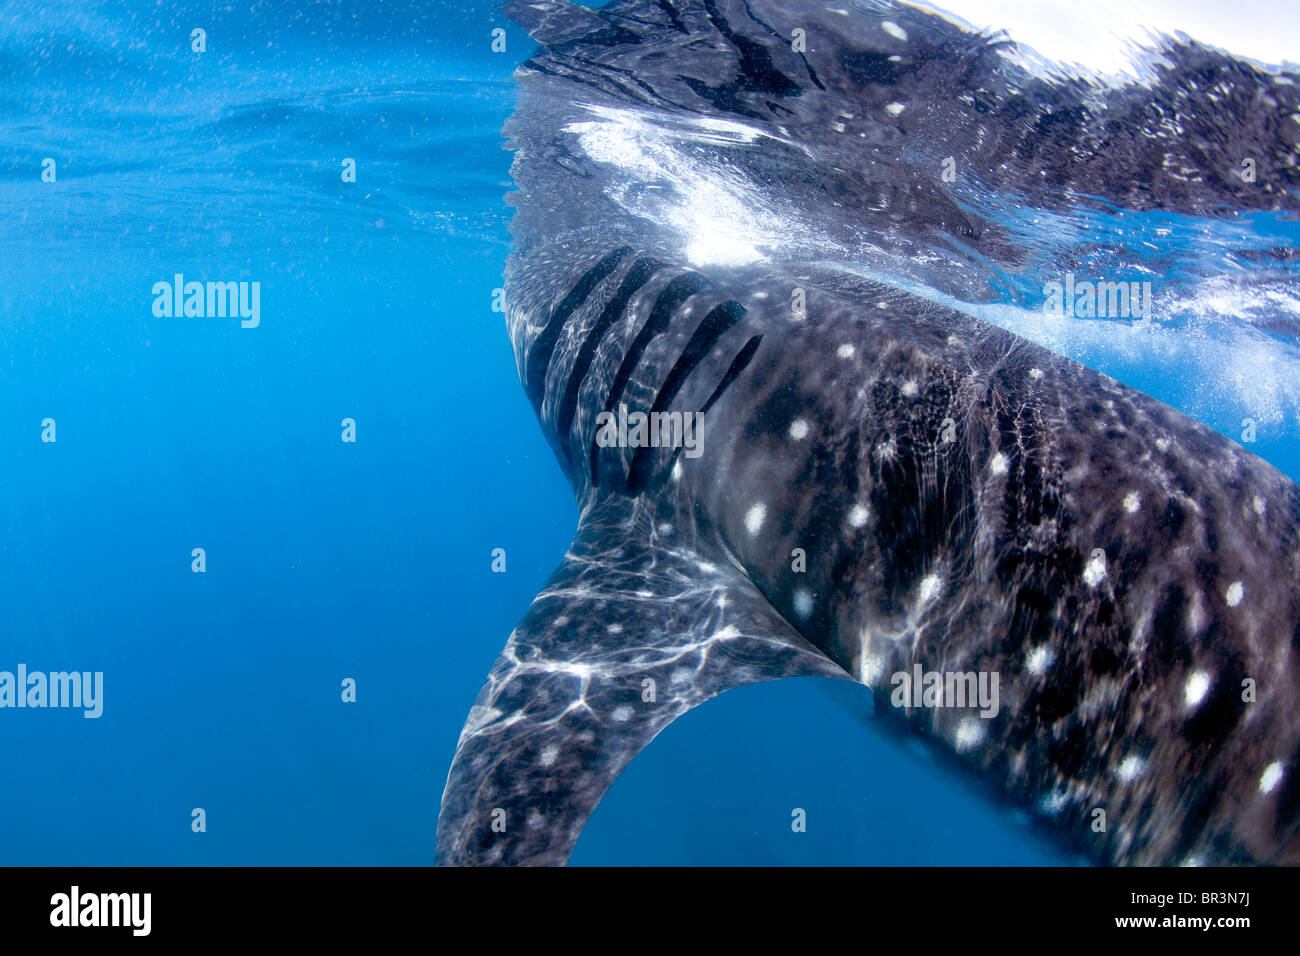 A Whale shark skims the surface in search of a planktonic feast. - Stock Image